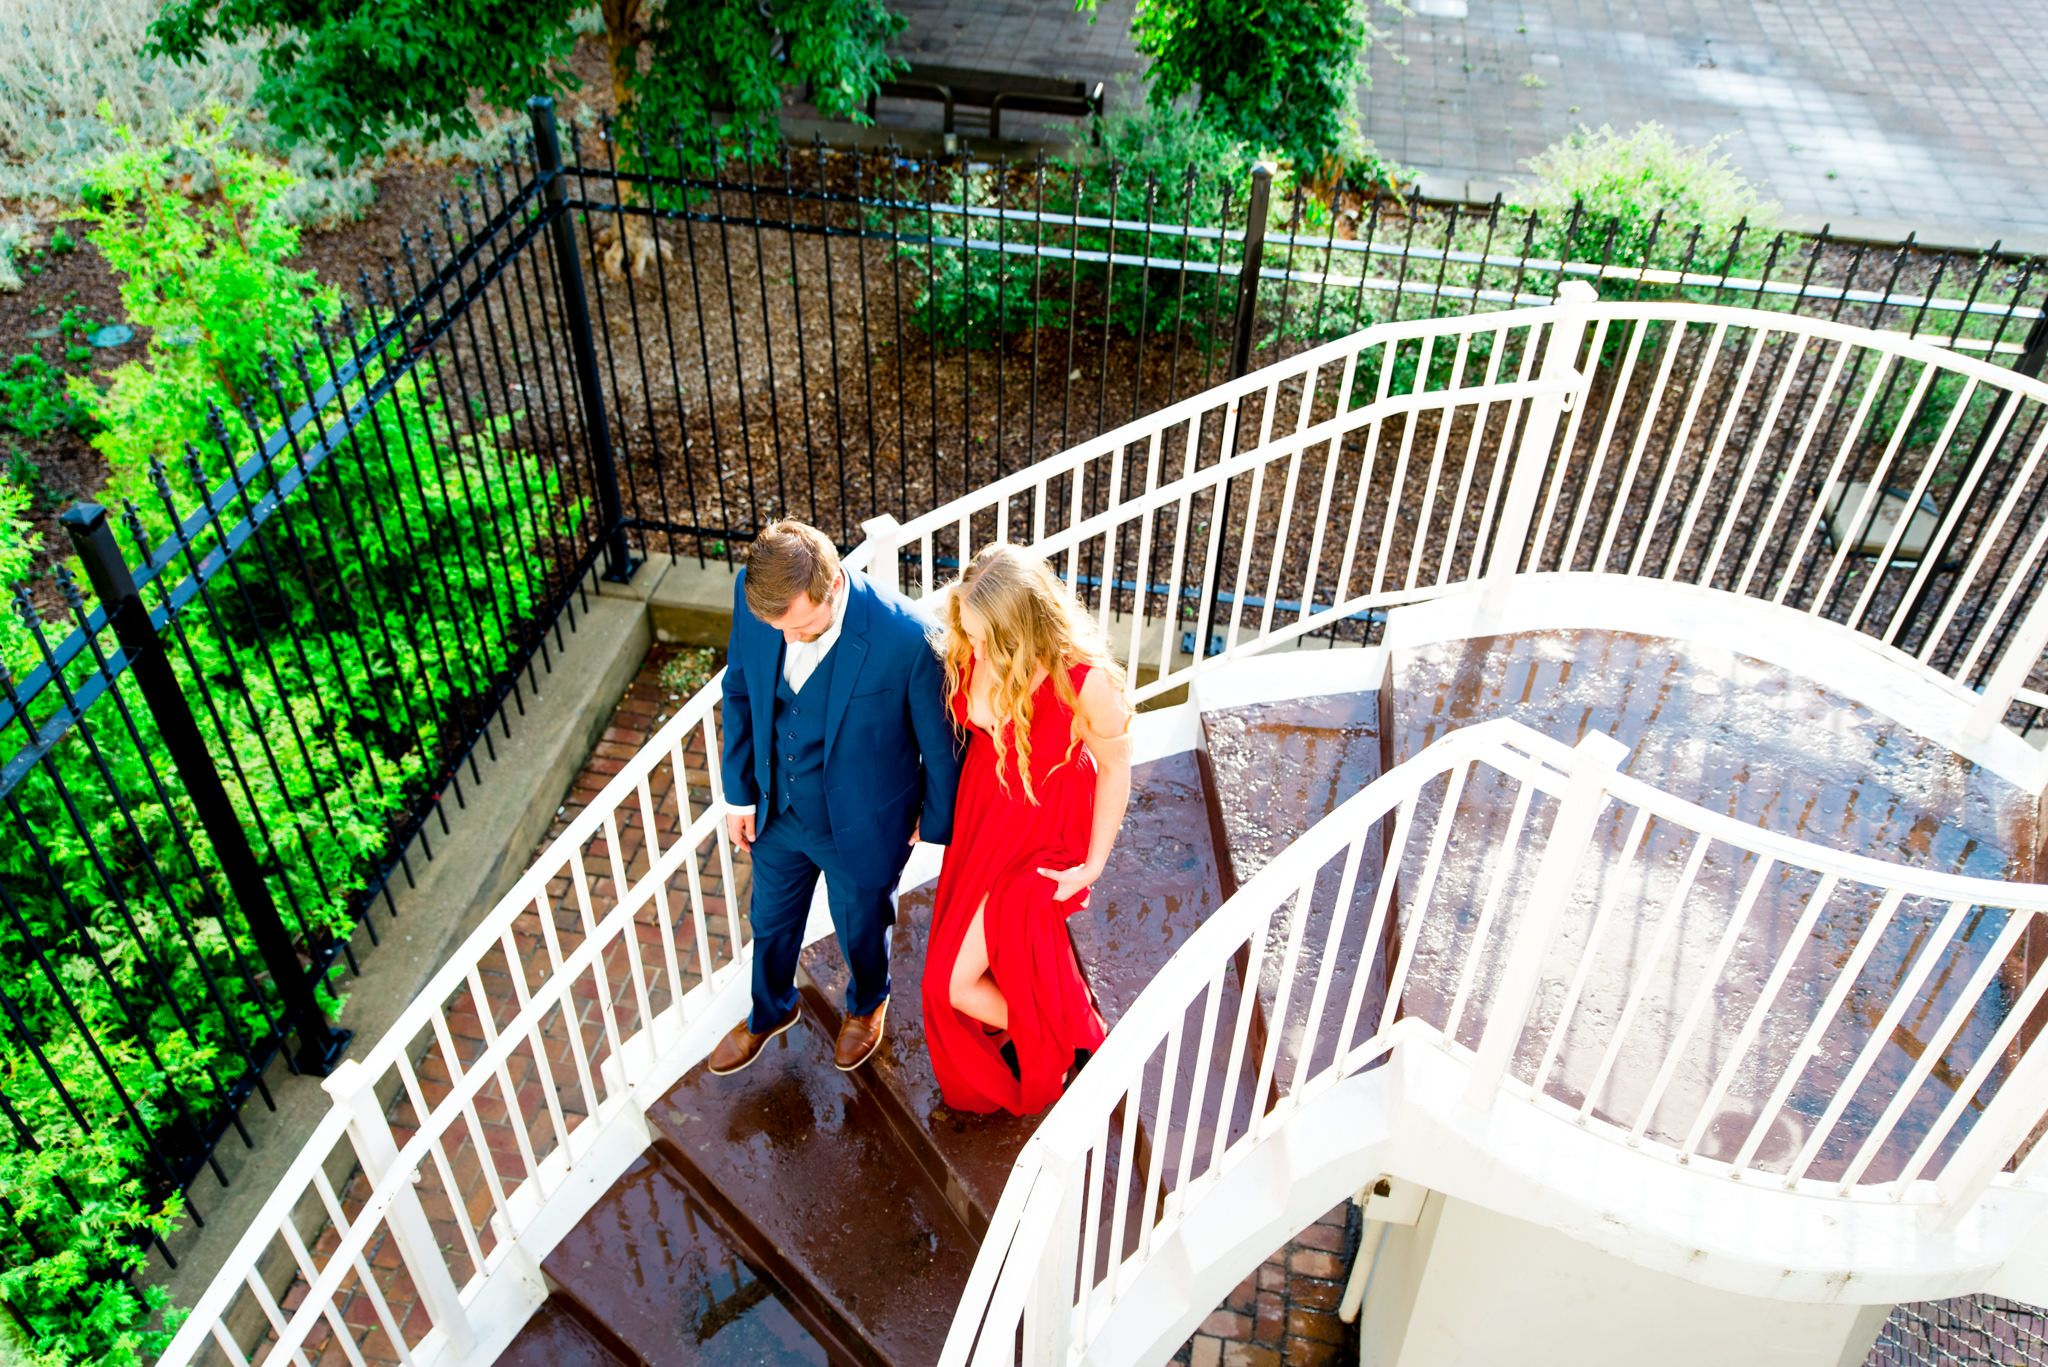 woman in red dress and man in navy suit walk down white staircase wet with rain at the Galt House Hotel